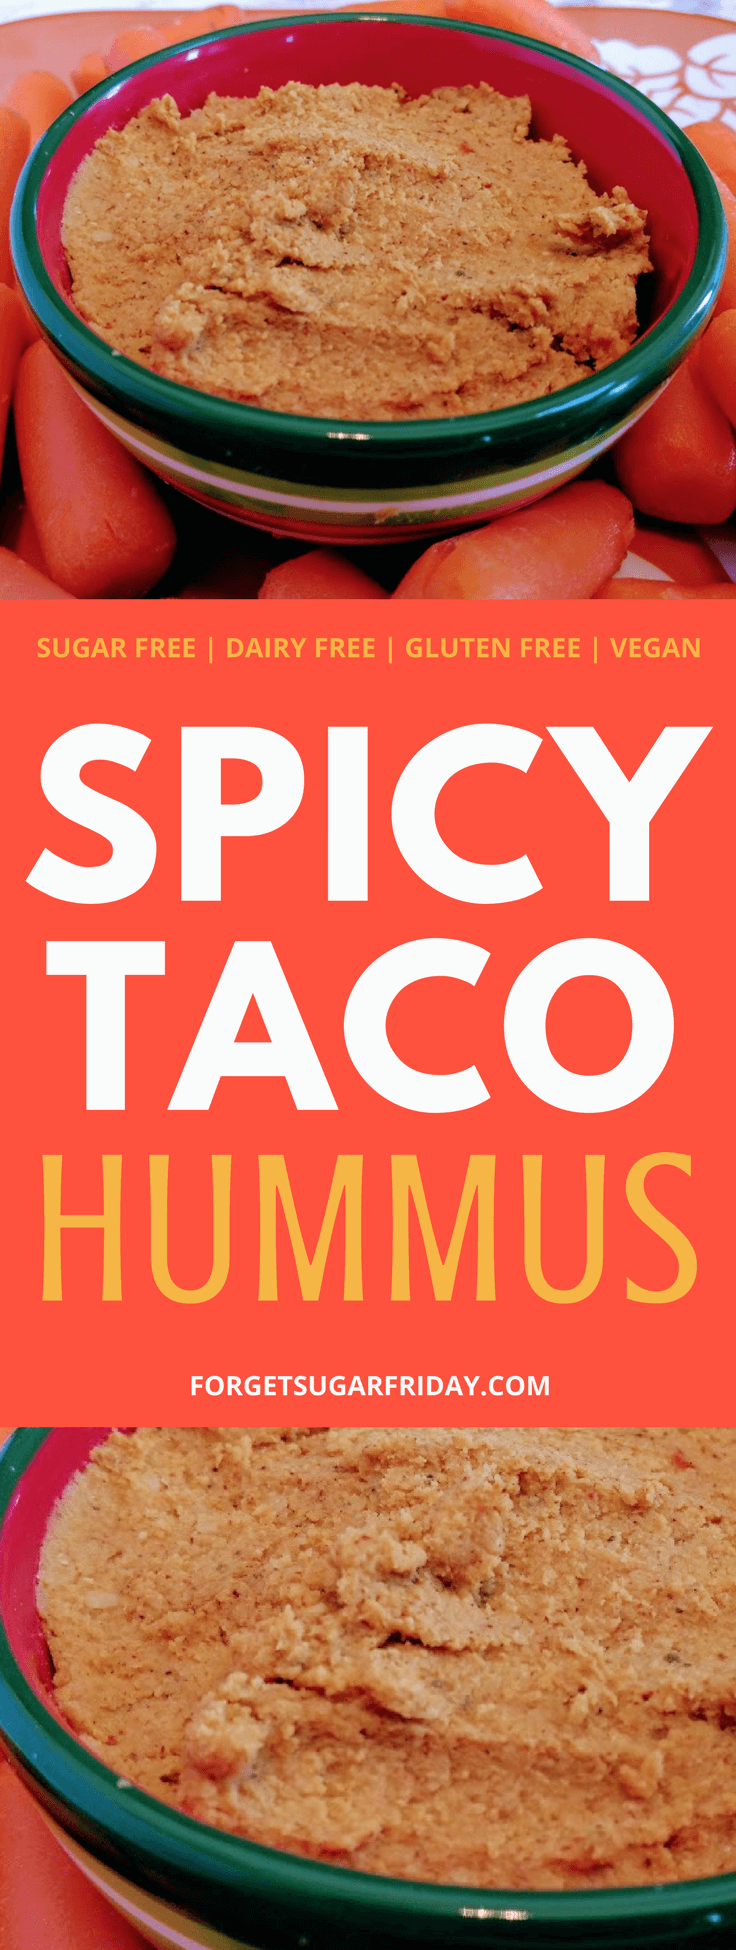 This Spicy Taco Hummus makes a great sugar-free snack! (Also dairy-free, gluten-free, vegan, and vegetarian!) It's lower in calories than traditional hummus, so it's an excellent option if you're trying to lose weight.